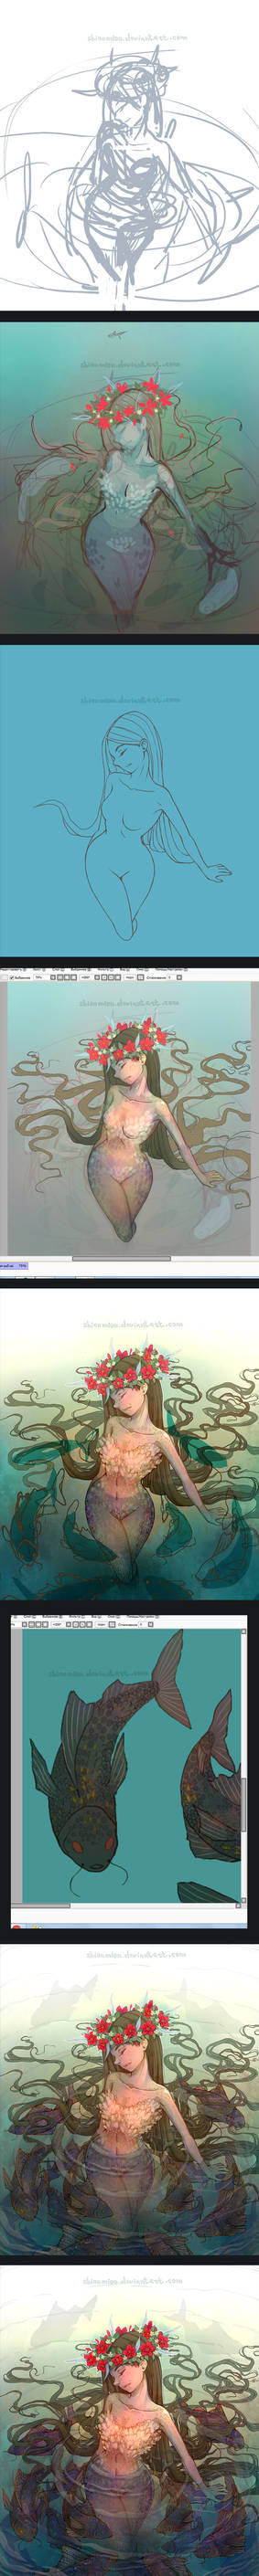 Swamp girl. Drawing process